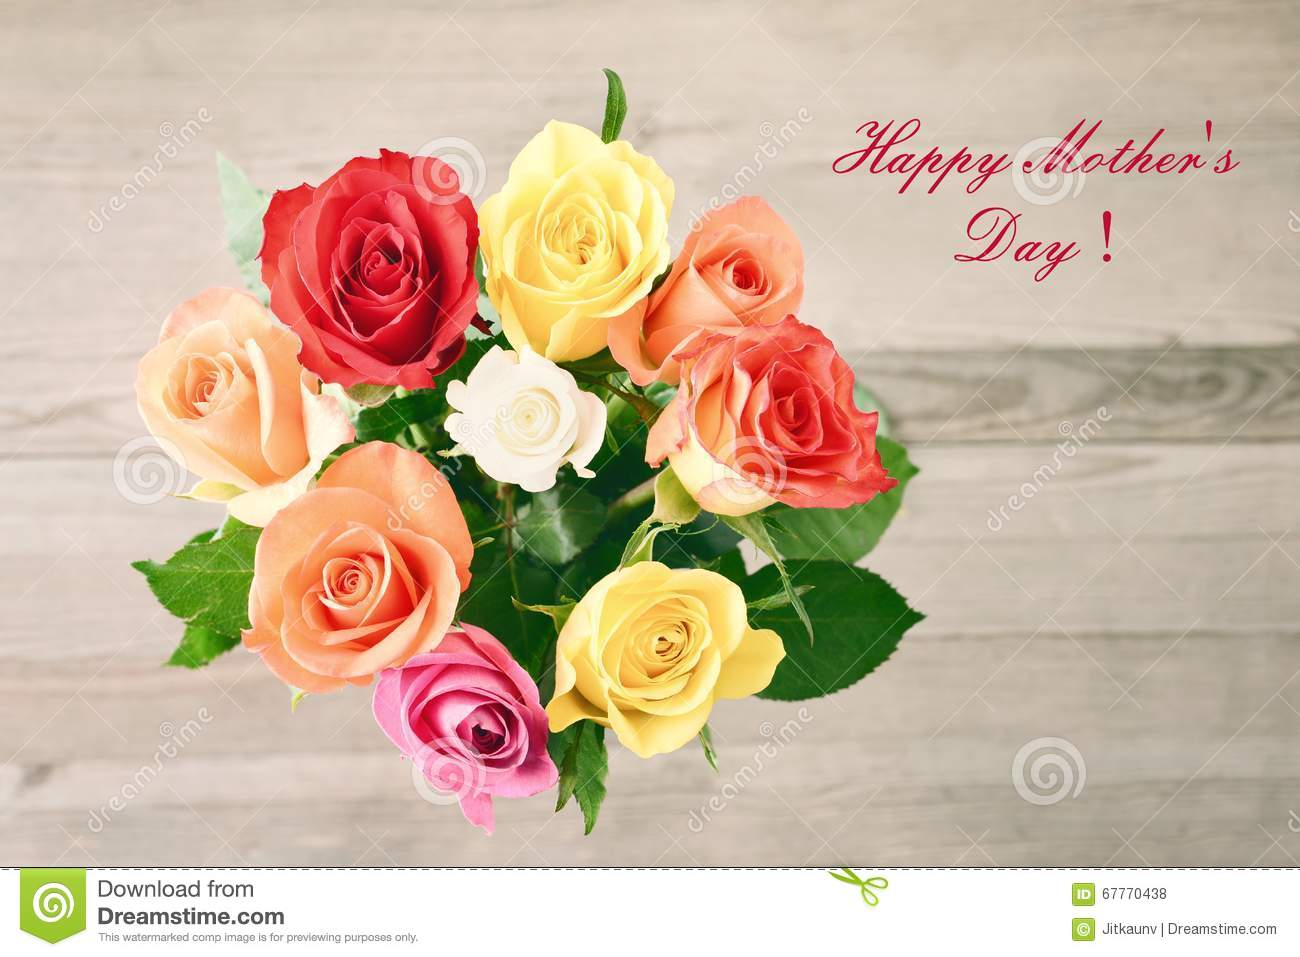 Mothers Day Bouquet Of Roses Stock Photo Image 67770438